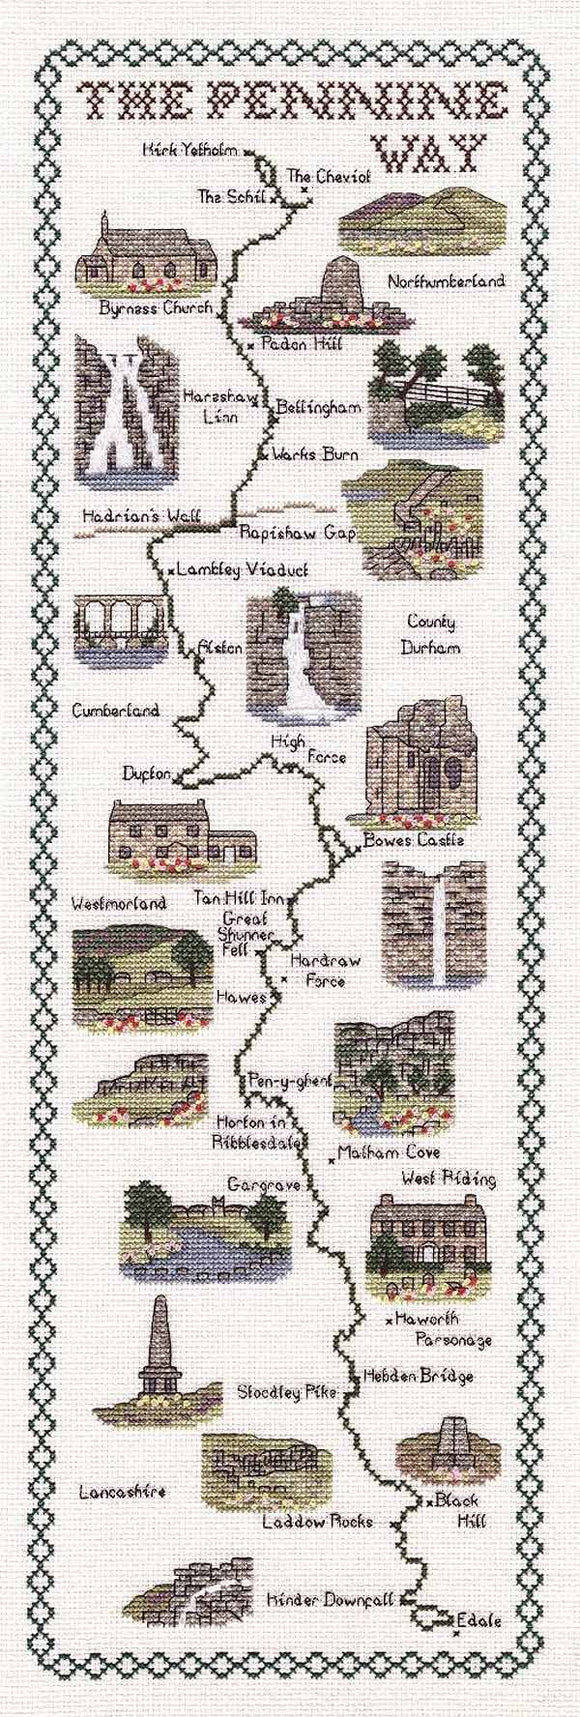 Pennine Way Map Cross Stitch Kit by Classic Embroidery